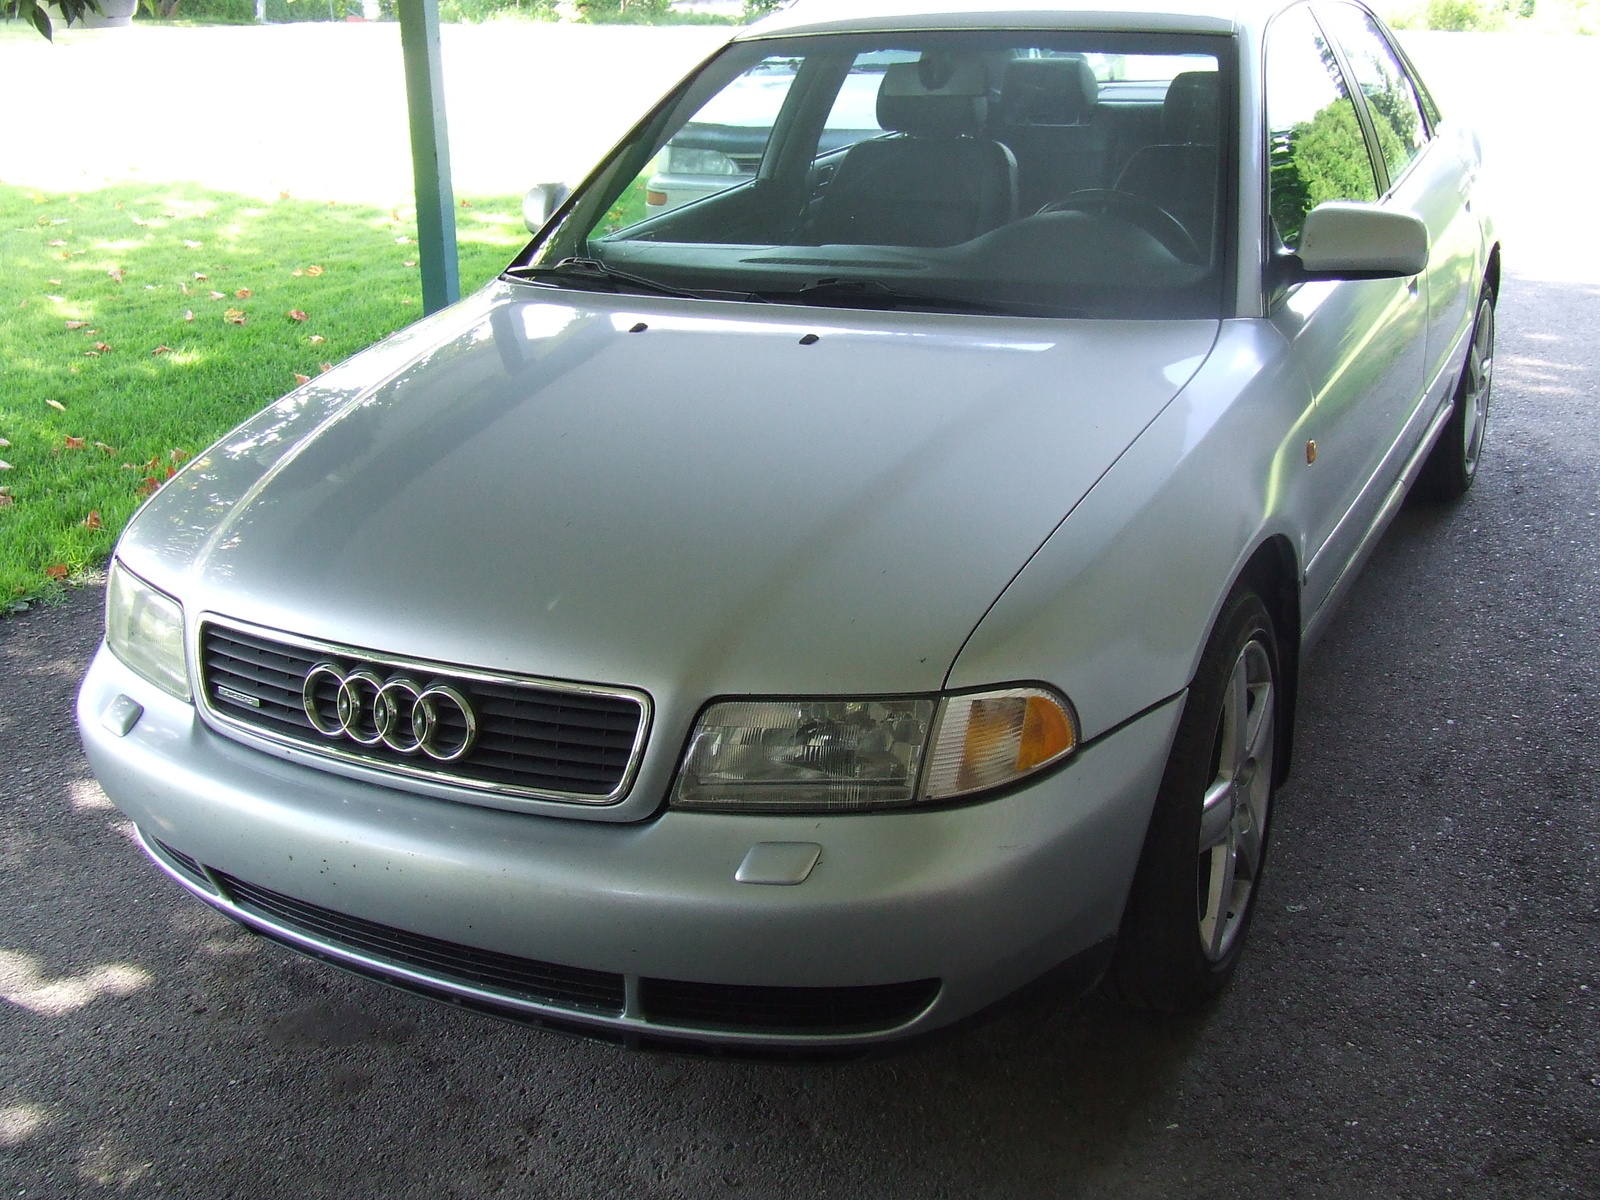 1998 audi a4 2 8 quattro related infomation specifications weili automotive network. Black Bedroom Furniture Sets. Home Design Ideas